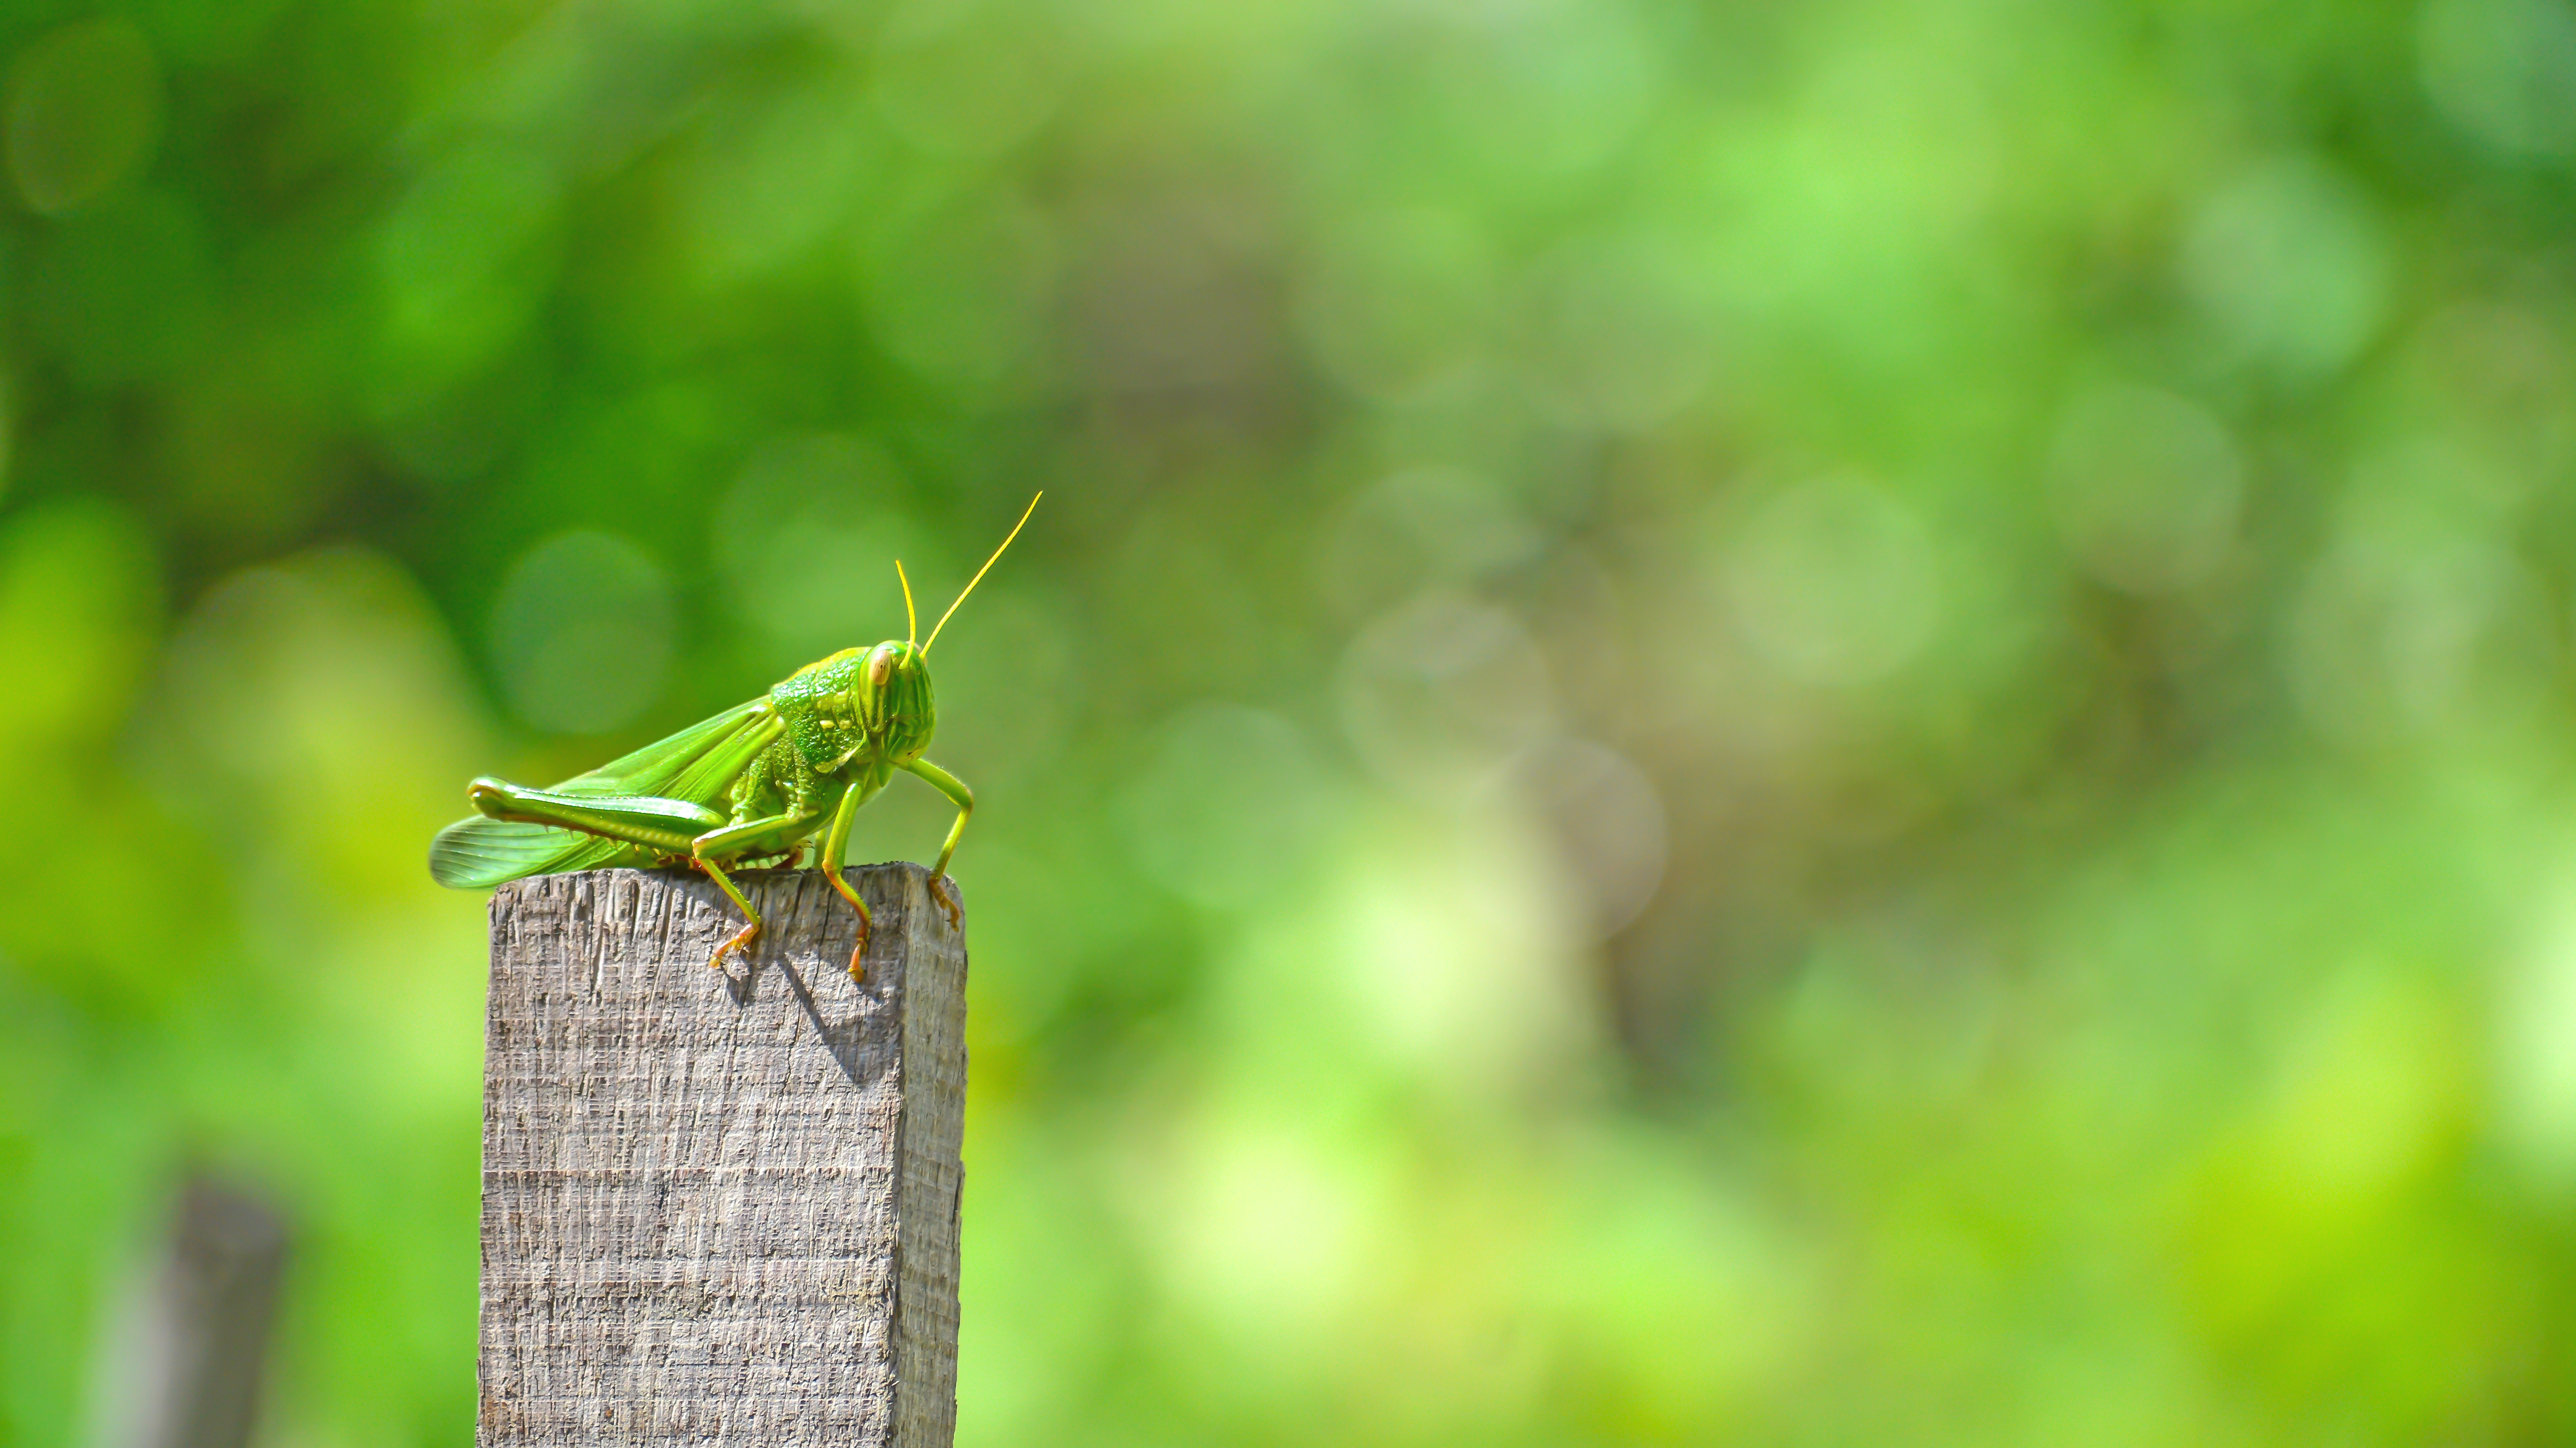 Nature grass branch sky field leaf flower animal wildlife green insect natural scenery fresh asia fauna invertebrate close up trees neck insects grasshopper vietnam folk macro photography rice fields grass tree cricket l